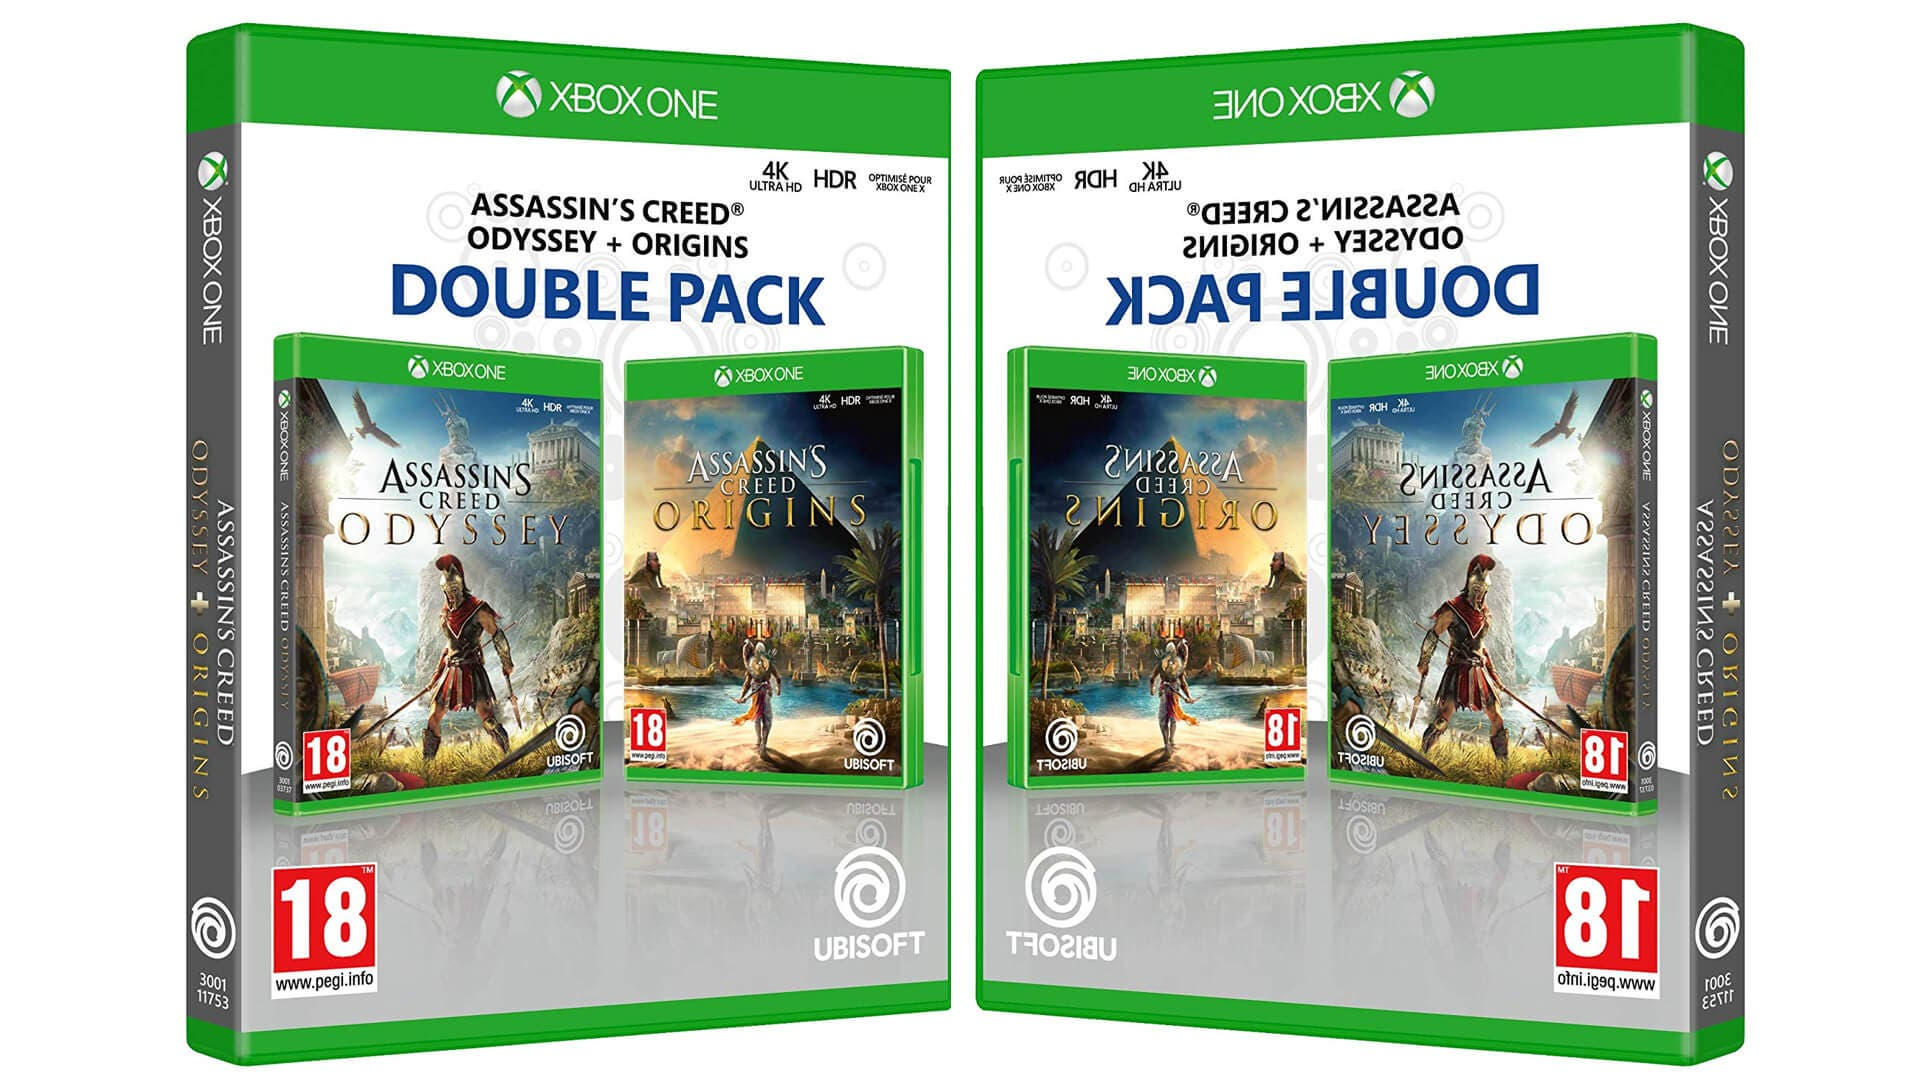 Gran oferta de Doble Pack Assassin's Creed Origins + Odyssey para Xbox One 6